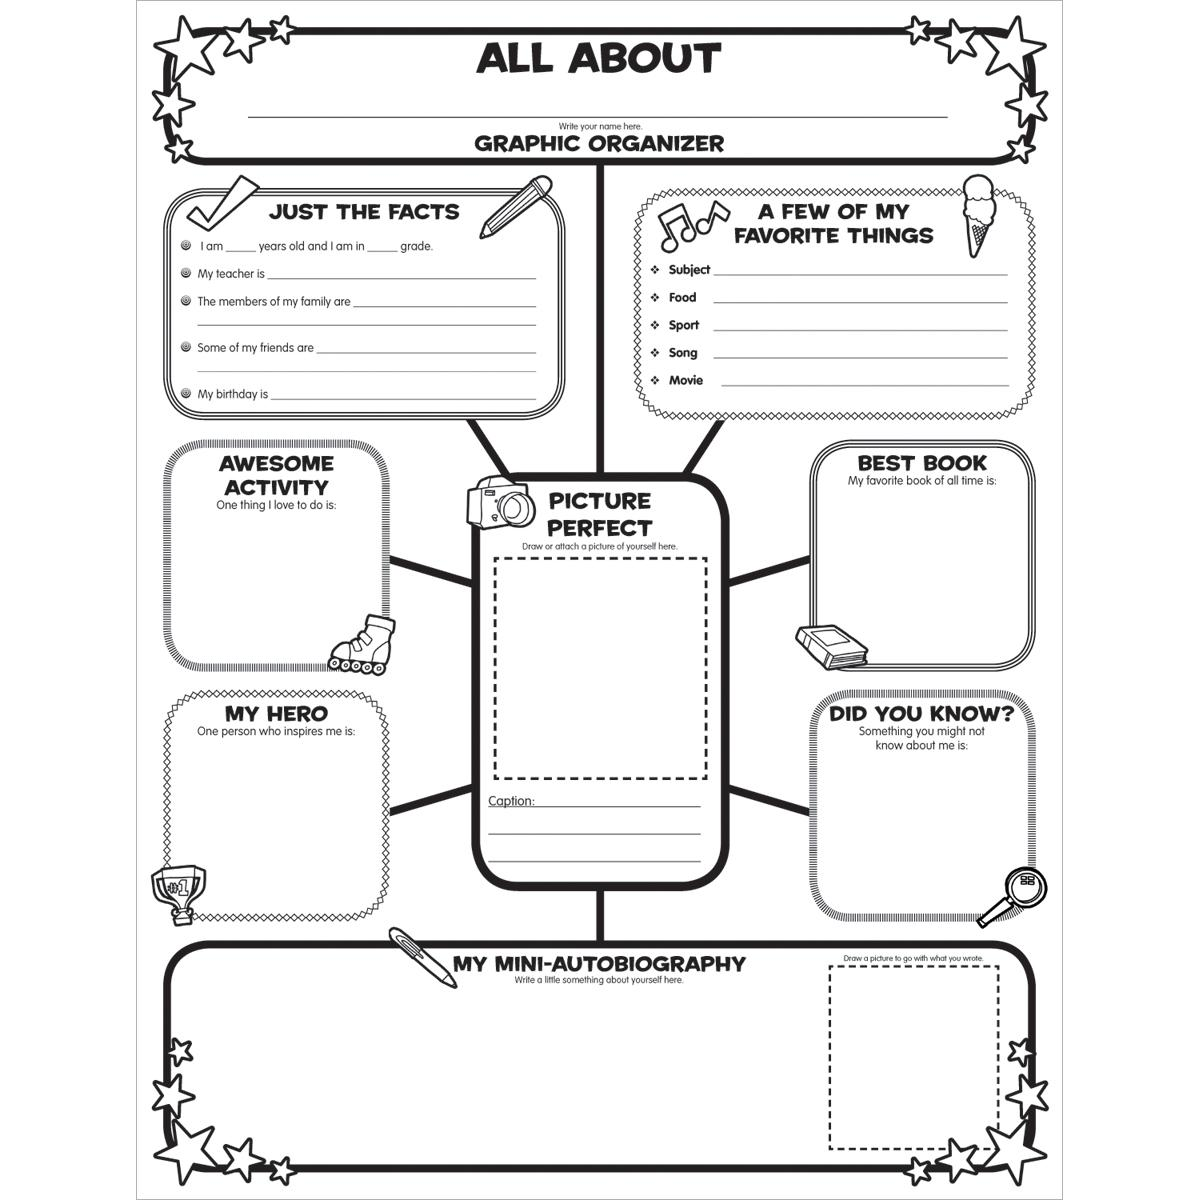 Graphic Organizer Posters: All About Me Web